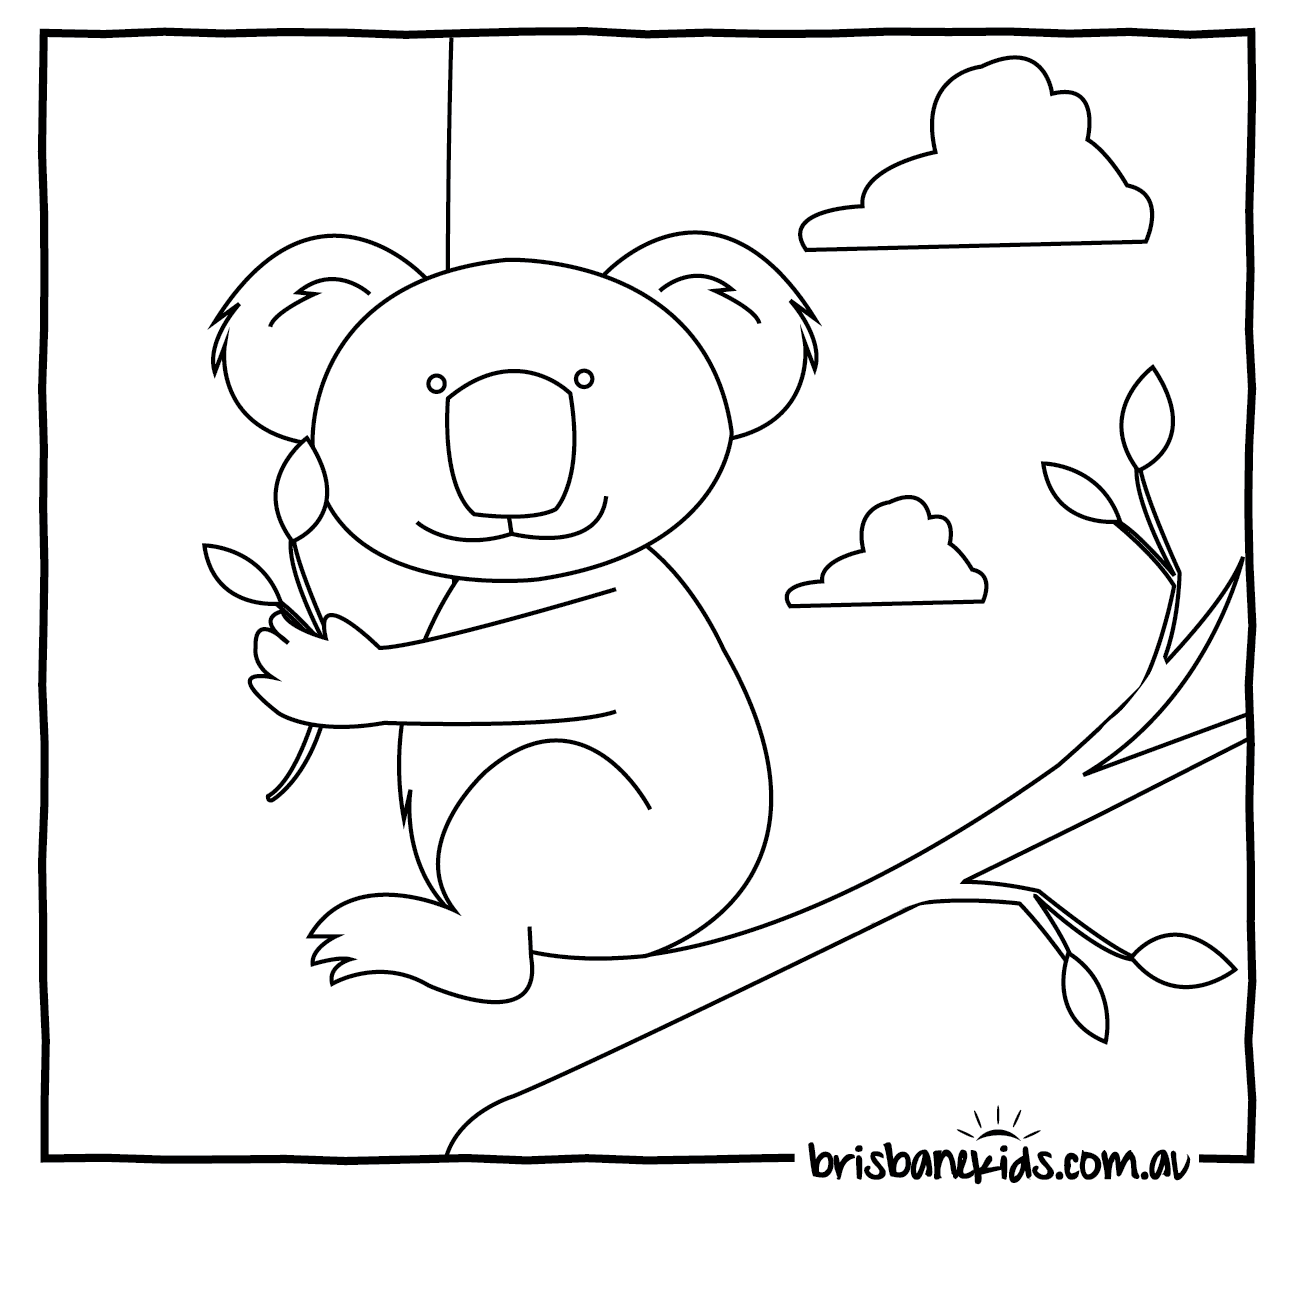 australia coloring pages australia coloring pages to download and print for free australia coloring pages